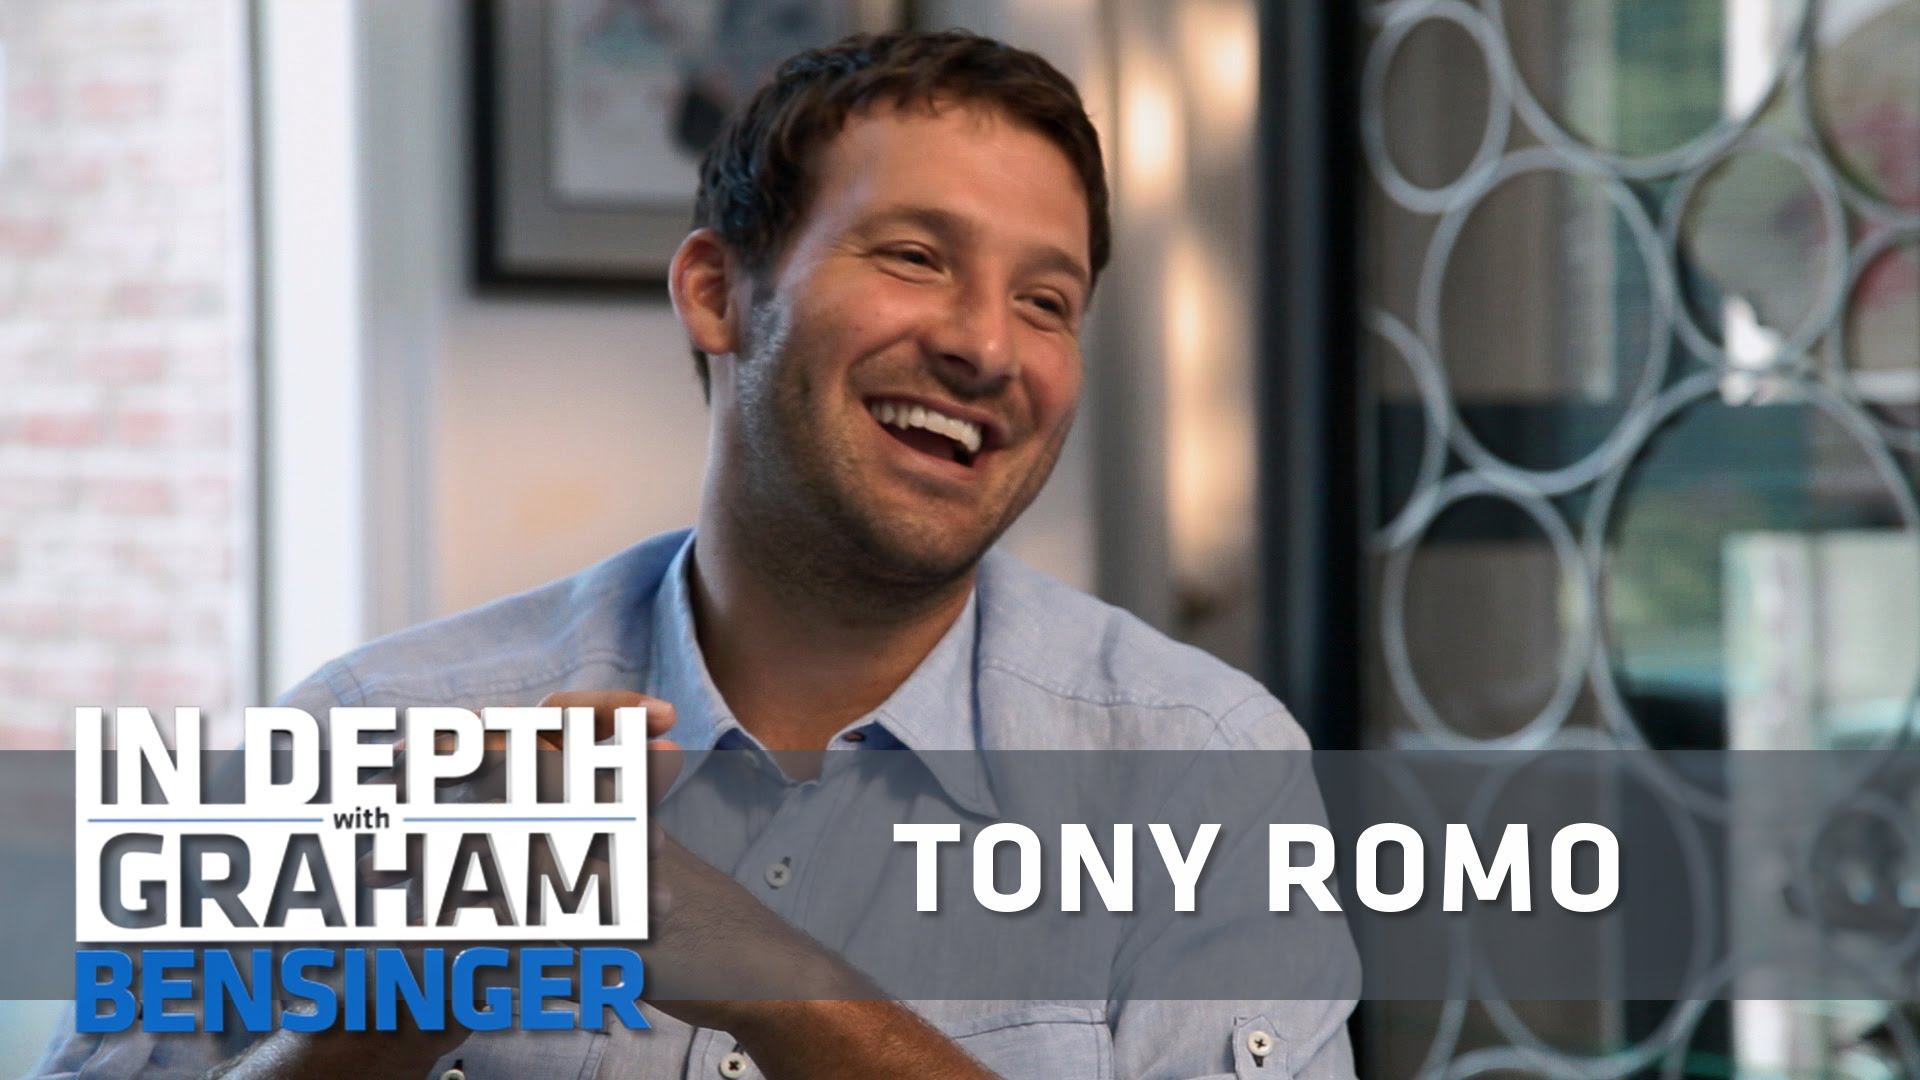 Tony Romo speaks on embarrassing his buddy in NCAA Football video game